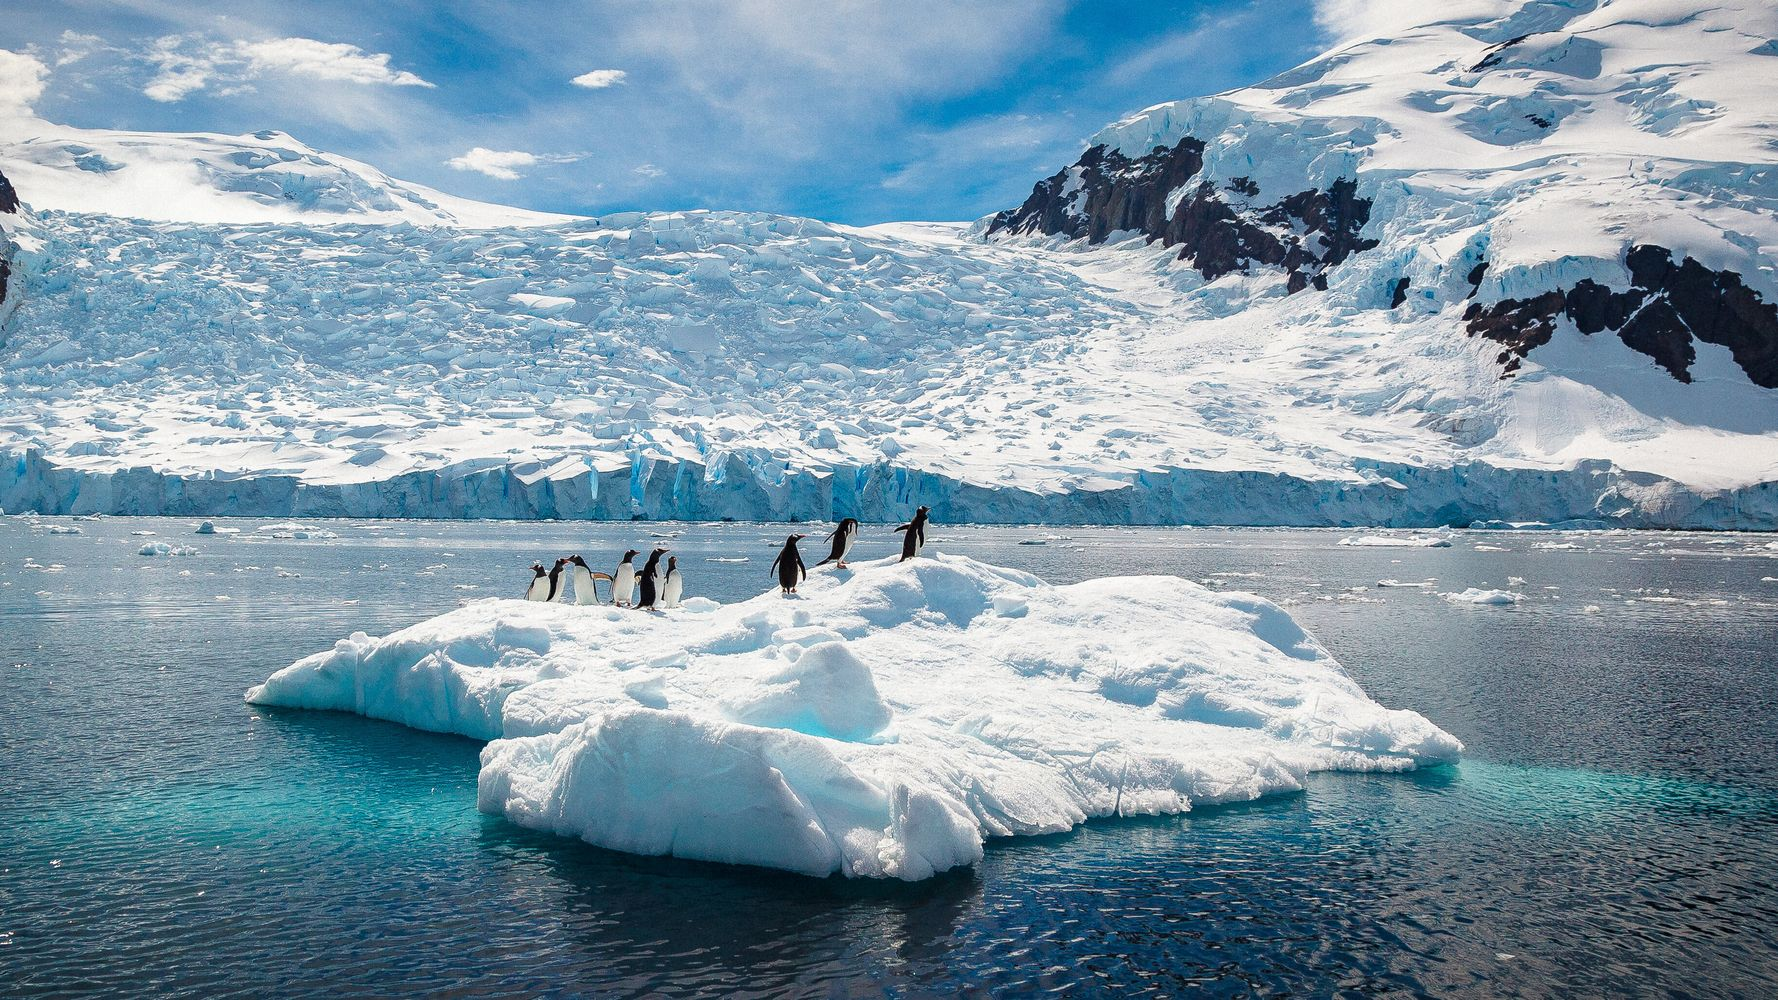 Antarctica Hits 64.9 Degrees, Highest Temperature Ever Recorded On Continent